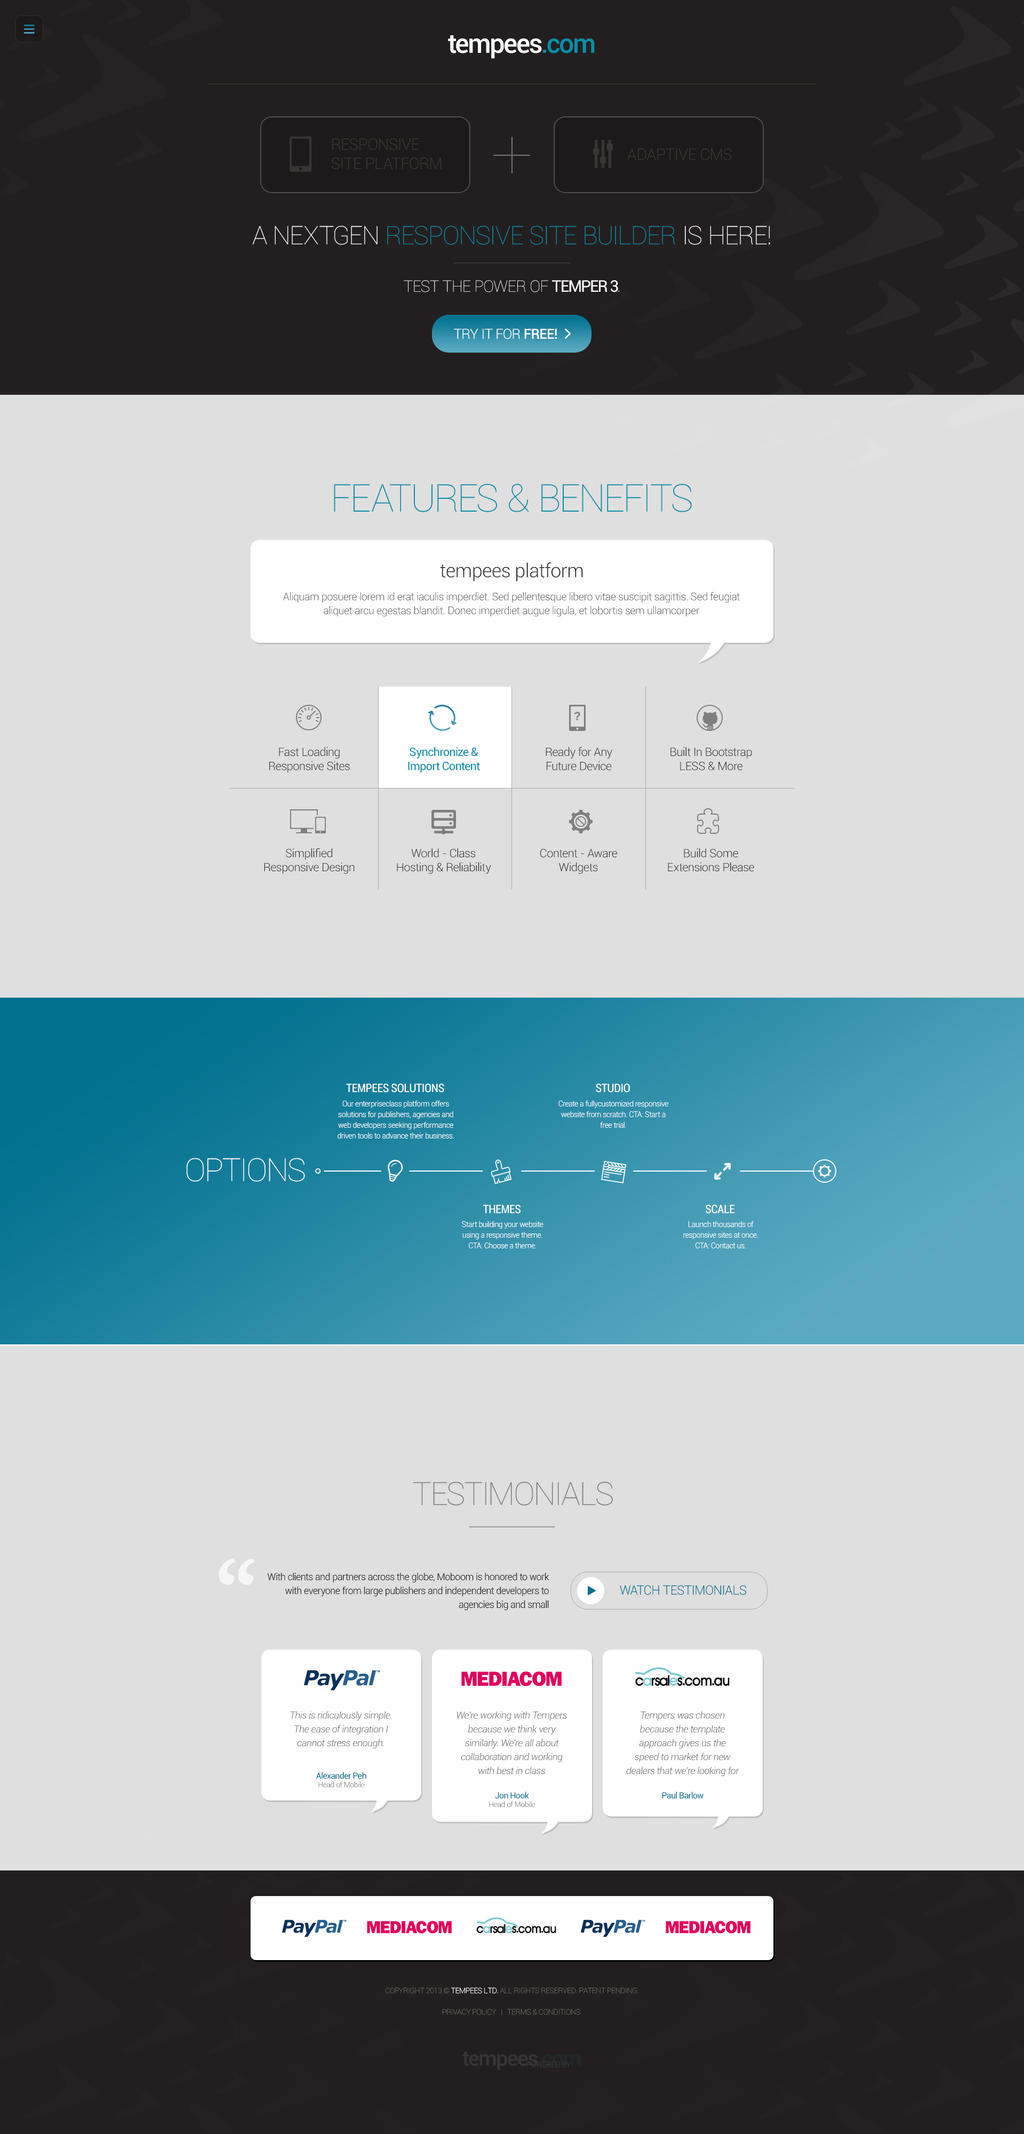 Dynamic Website FREE PSD template by tempeescom